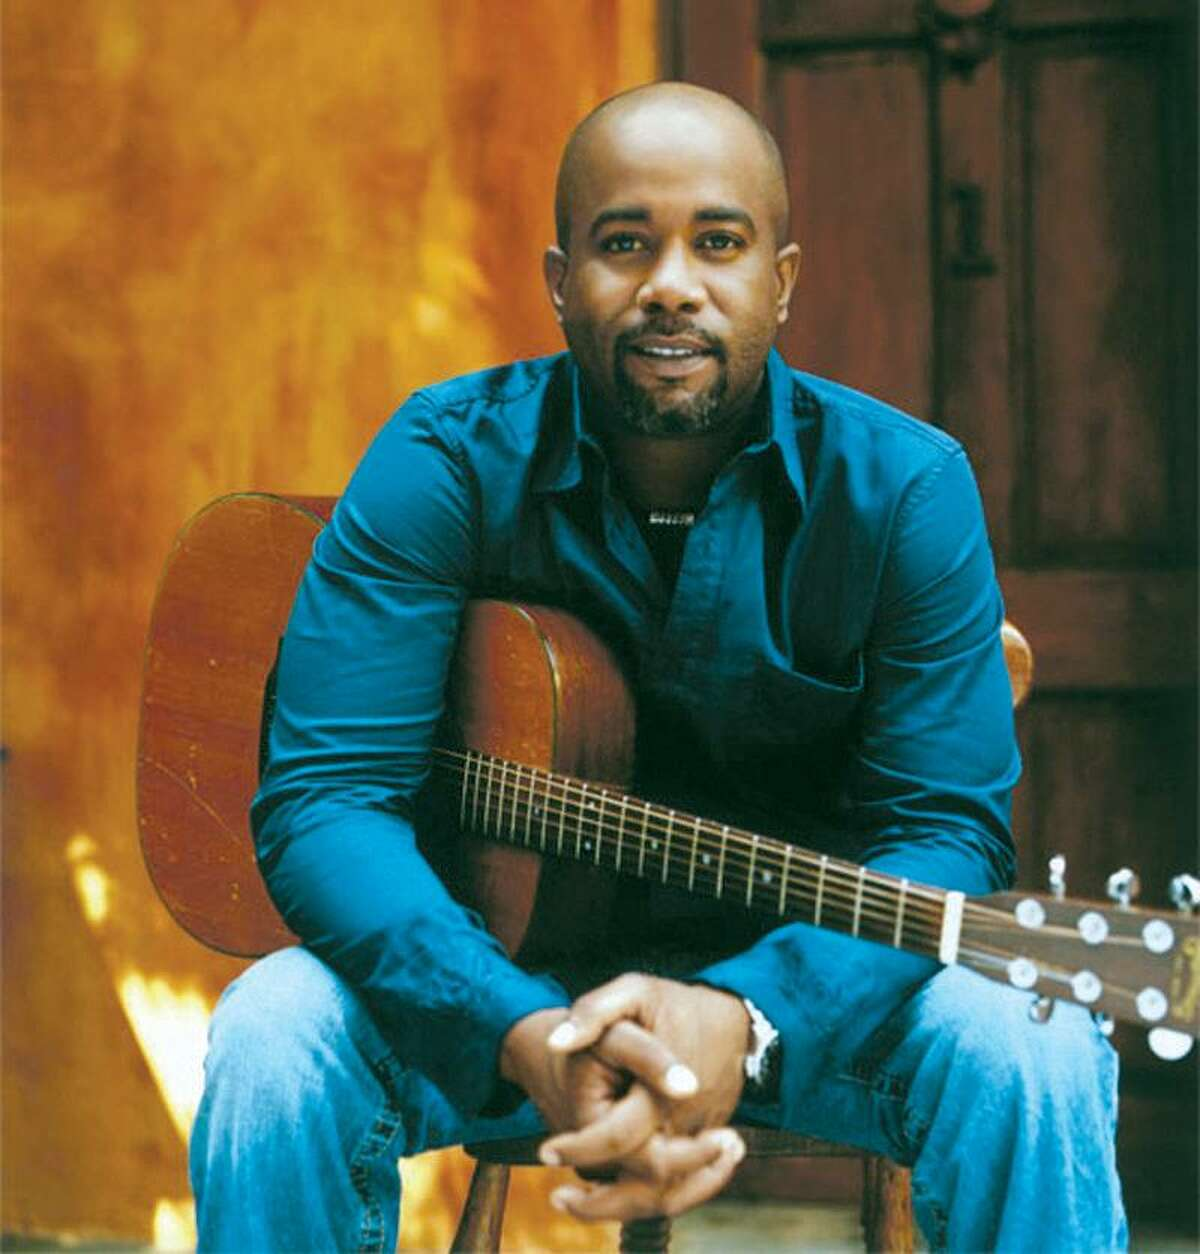 Darius Rucker has racked up 10 top 10 singles in 10 years as a country musician.